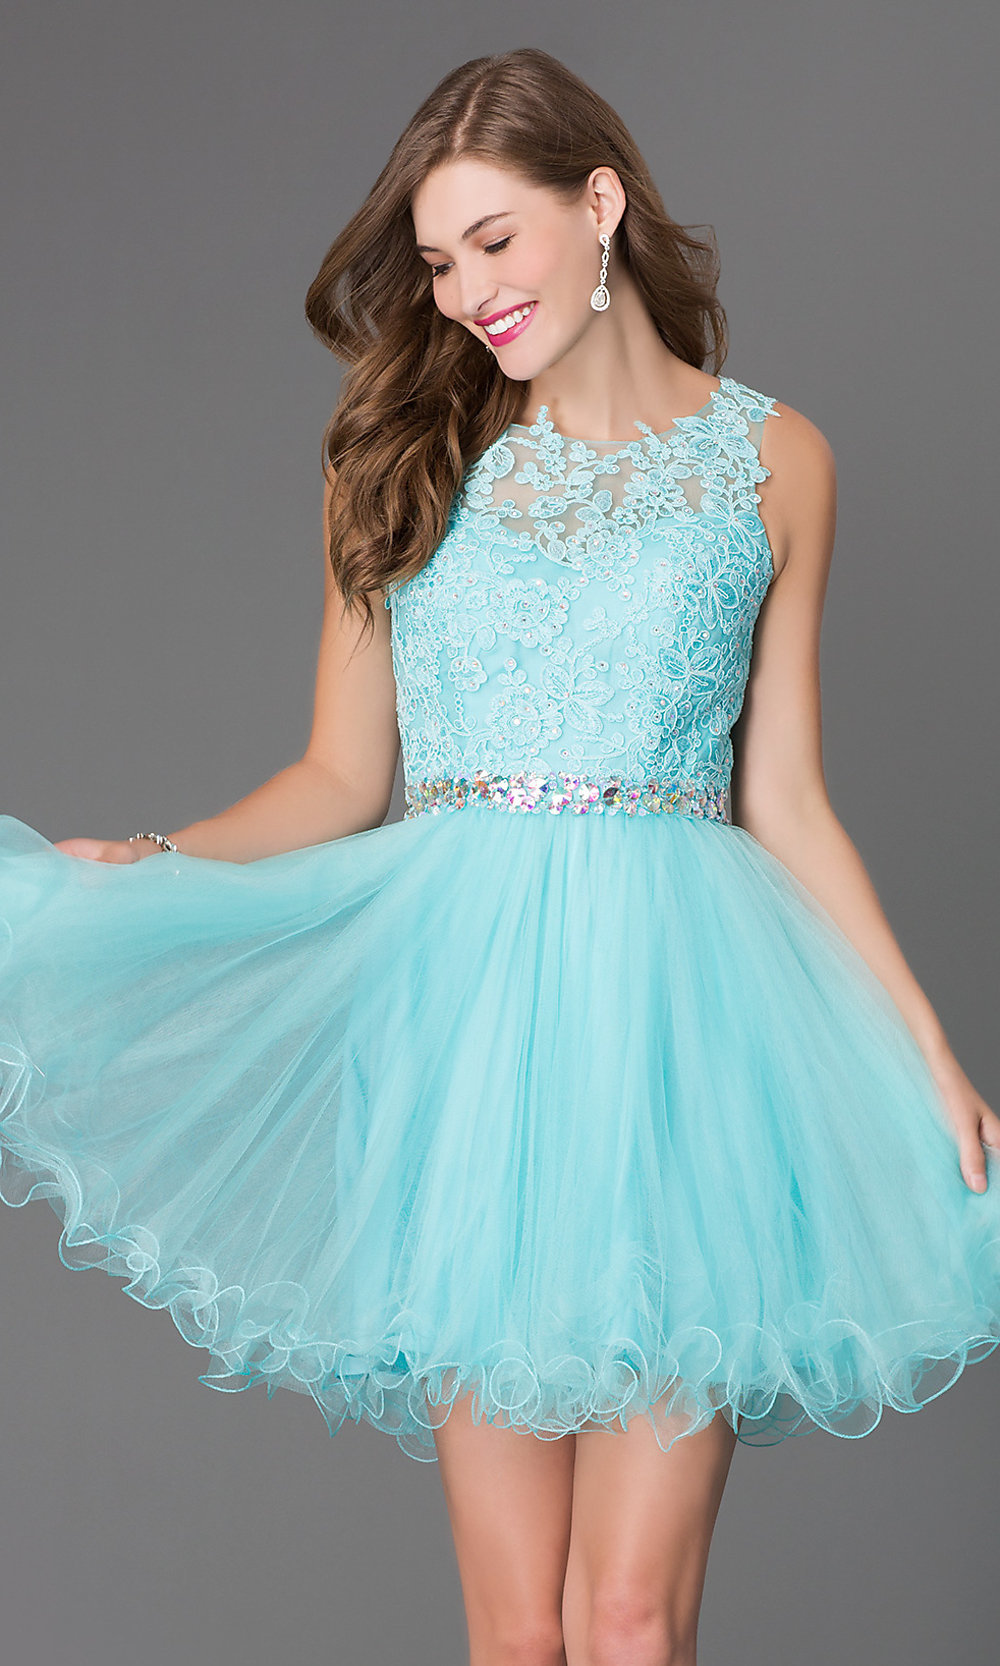 Semi-Formal Short A-Line Homecoming Dress - PromGirl